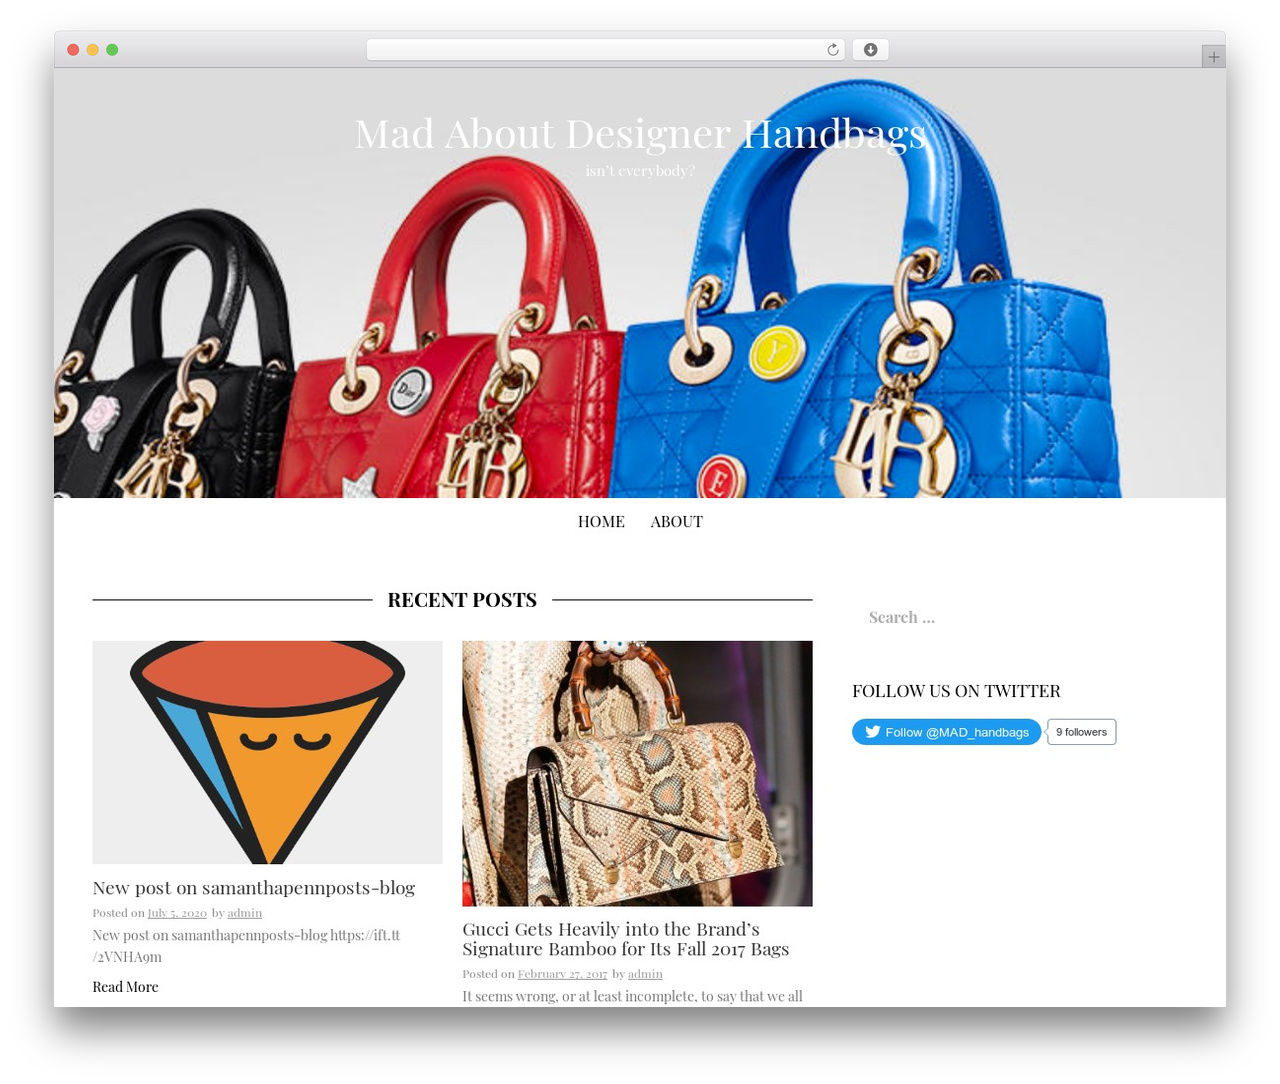 9e59c0e6e983 MadHat template WordPress free by InkHive - mad-about-designer-handbags.com